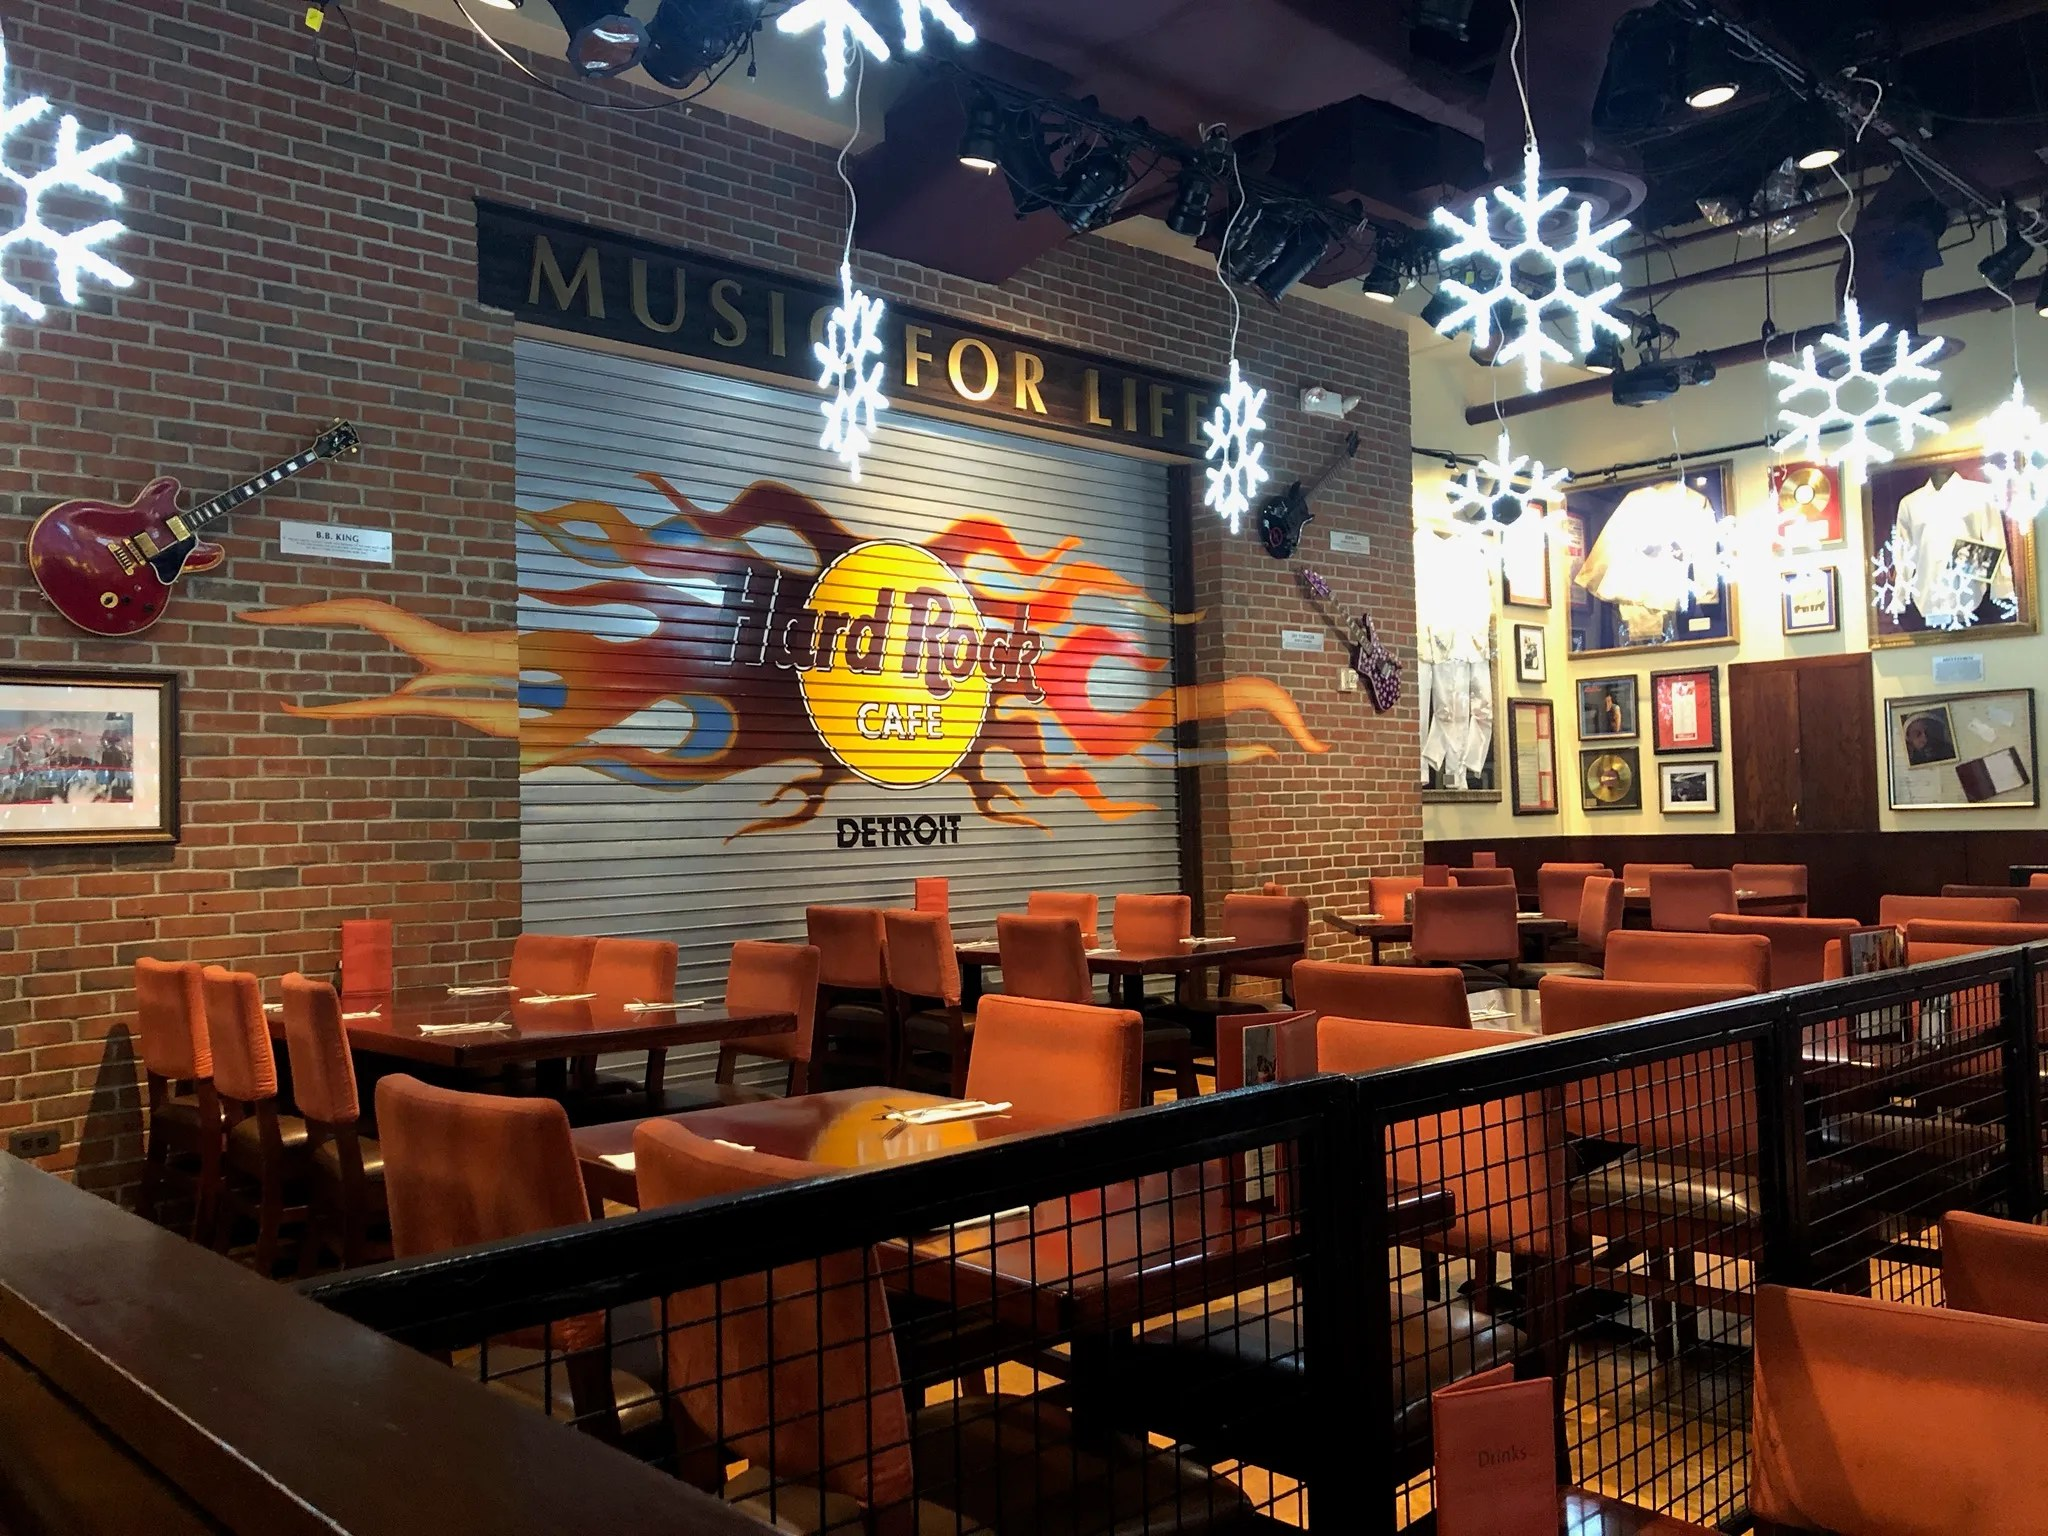 Hard Rock Cafe's last day in Detroit is Saturday